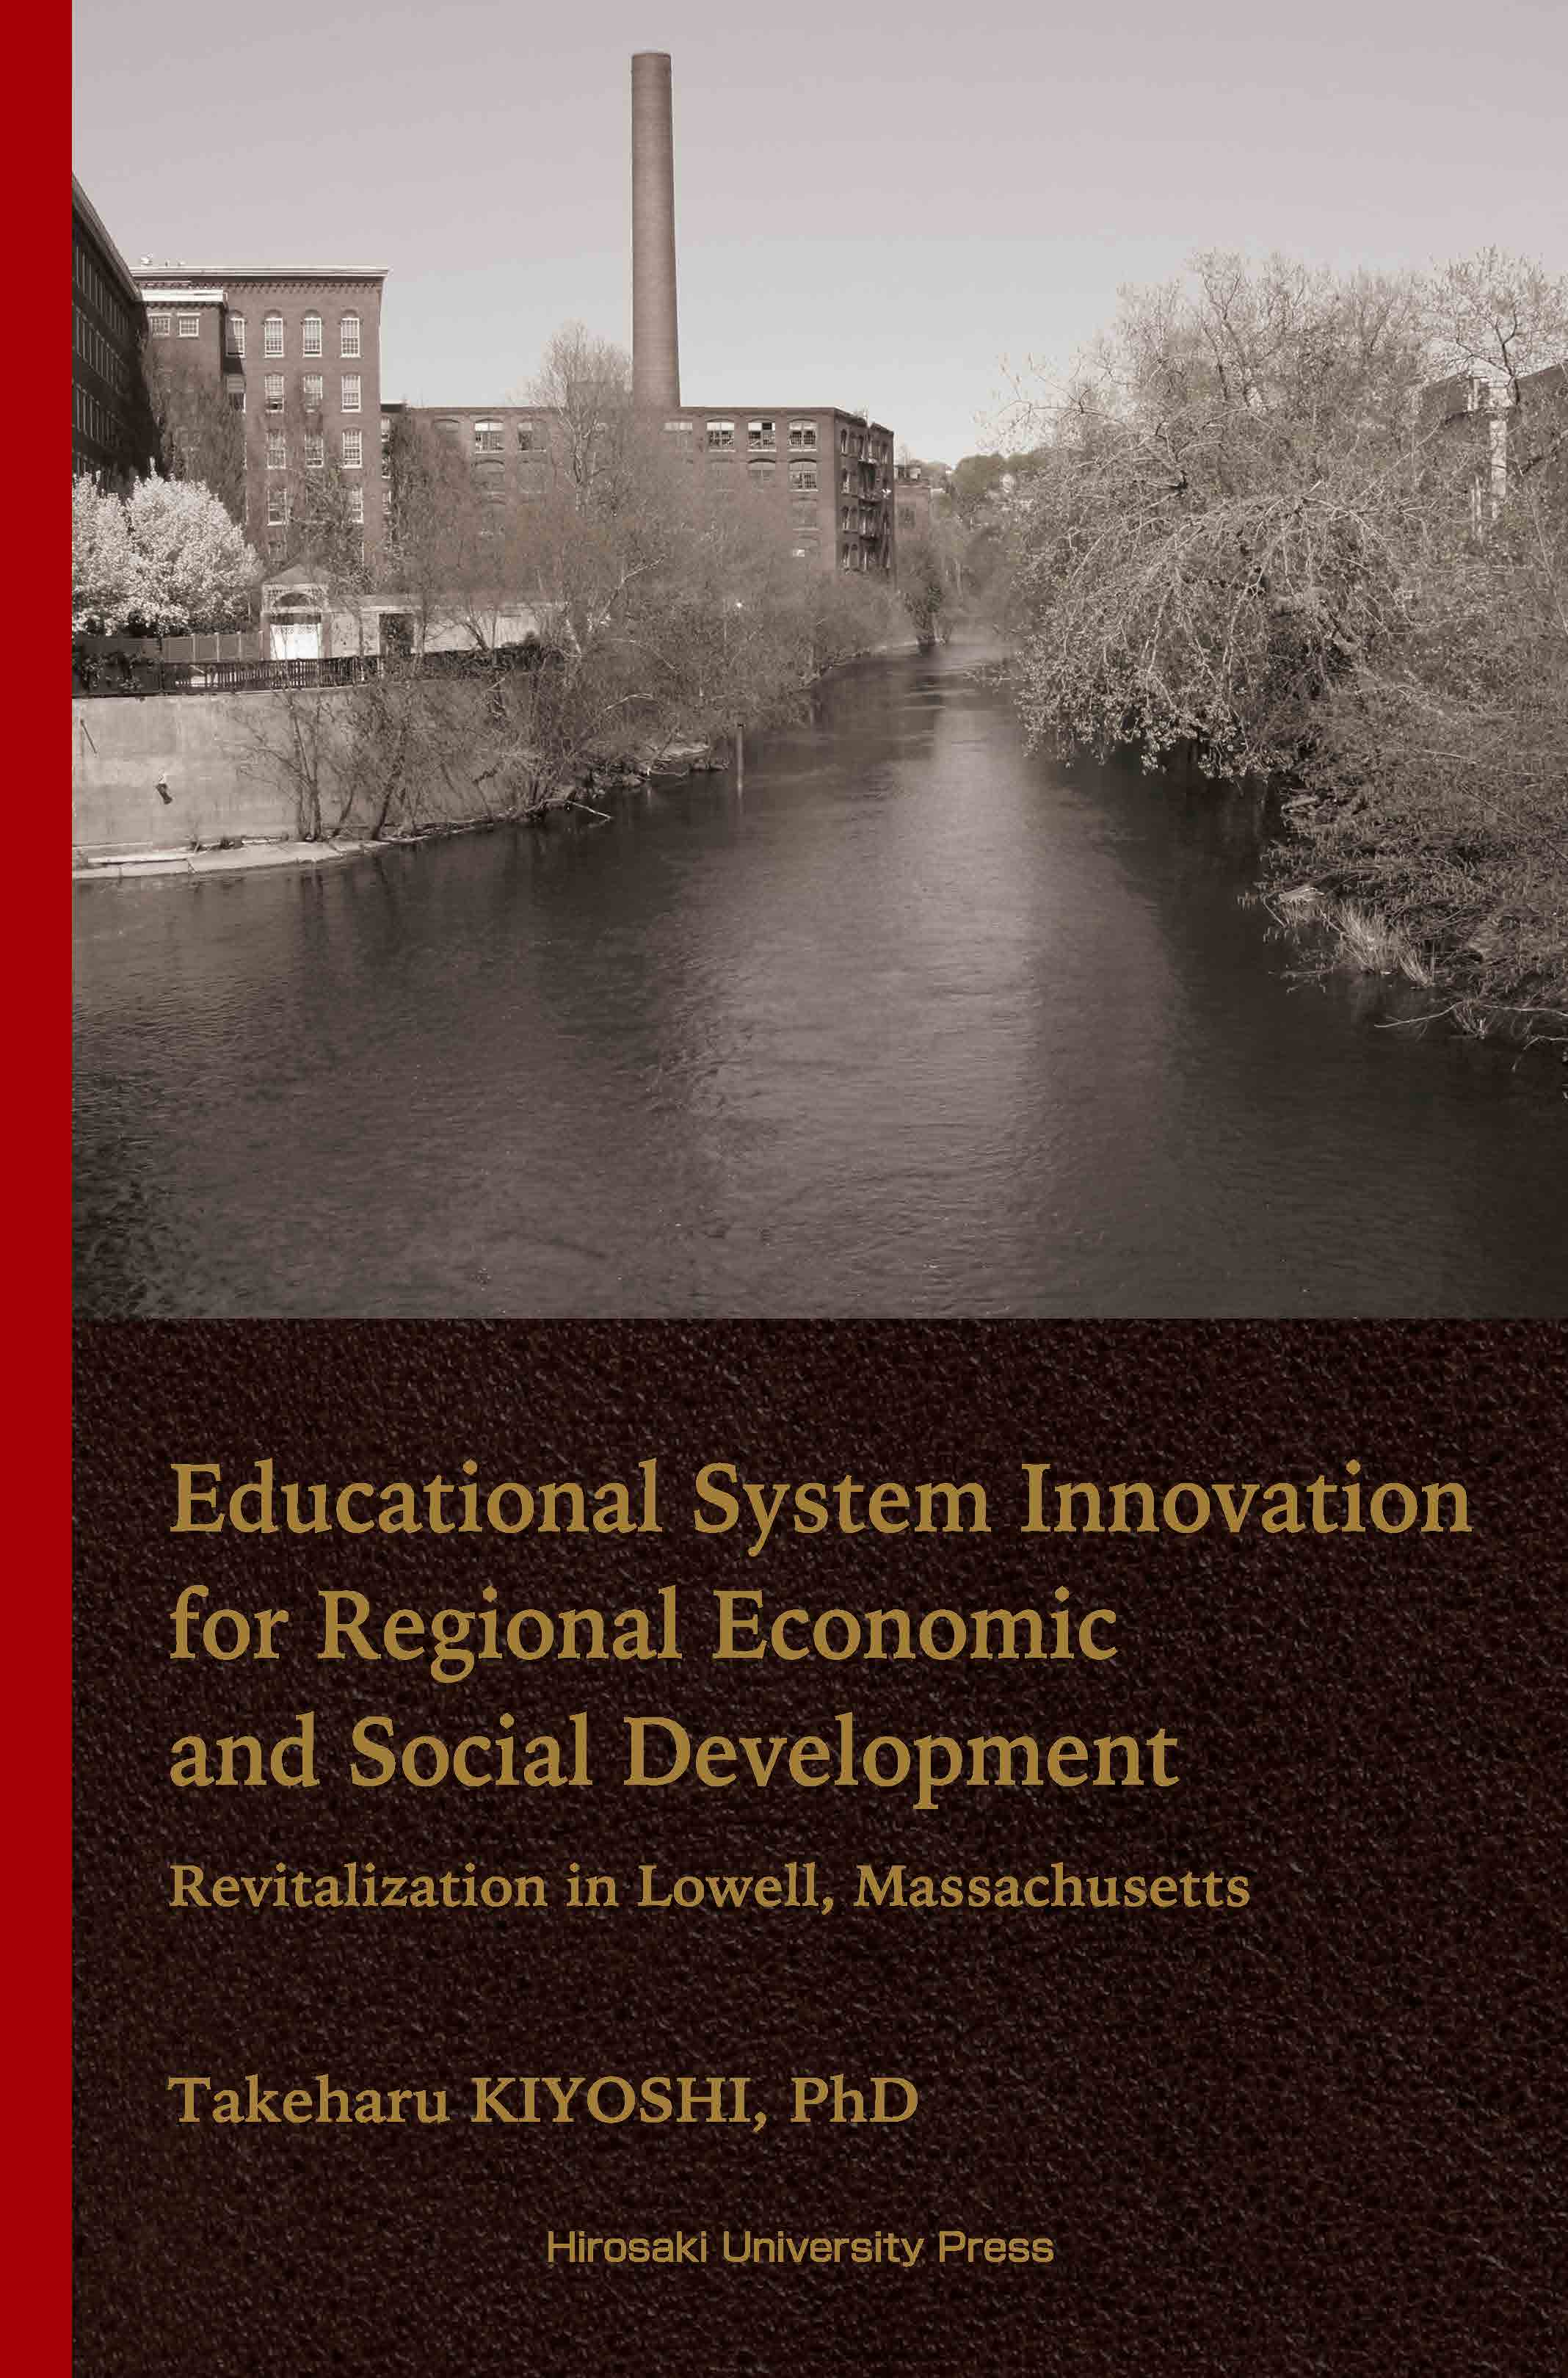 「Educational System Innovation for Regional Economic and Social Development: Revitalization in Lowell, Massachusetts」